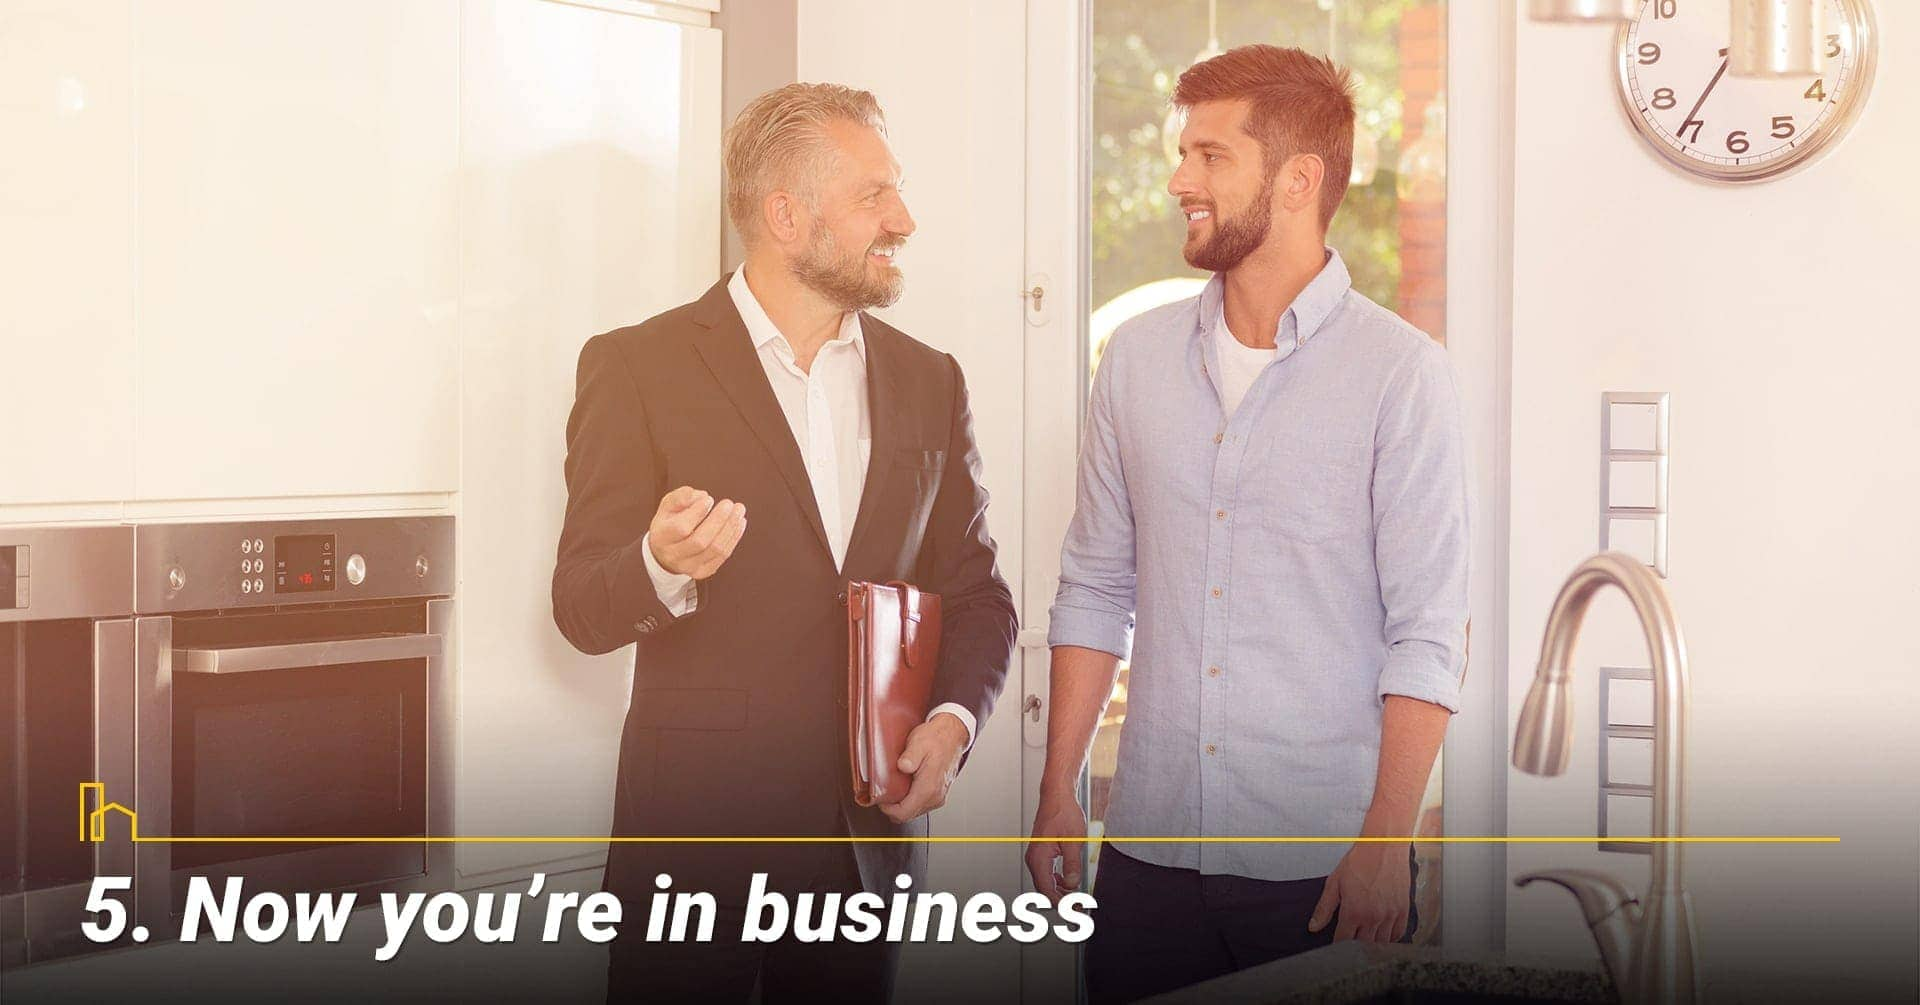 Now you're in business, treat your rental property as a business